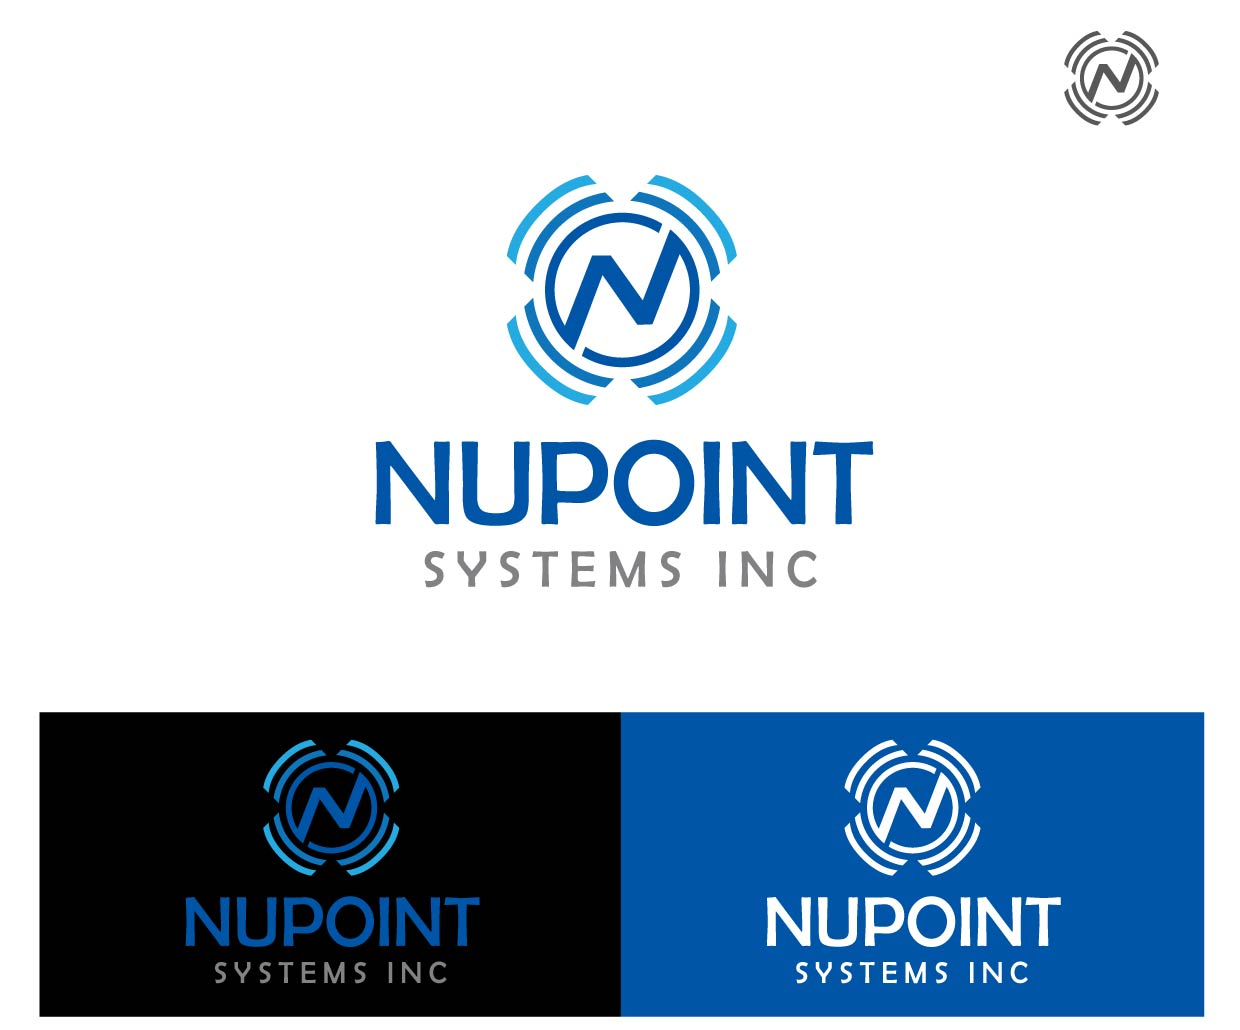 Logo Design by peps - Entry No. 71 in the Logo Design Contest Unique Logo Design Wanted for Nupoint Systems Inc..